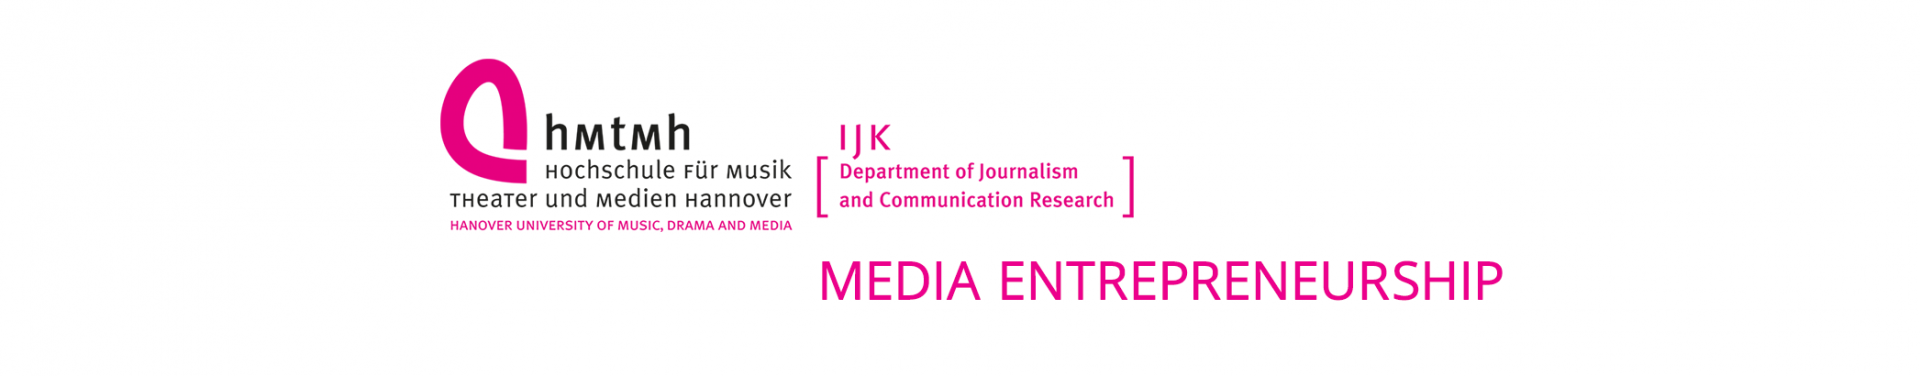 Media Entrepreneurship at IJK